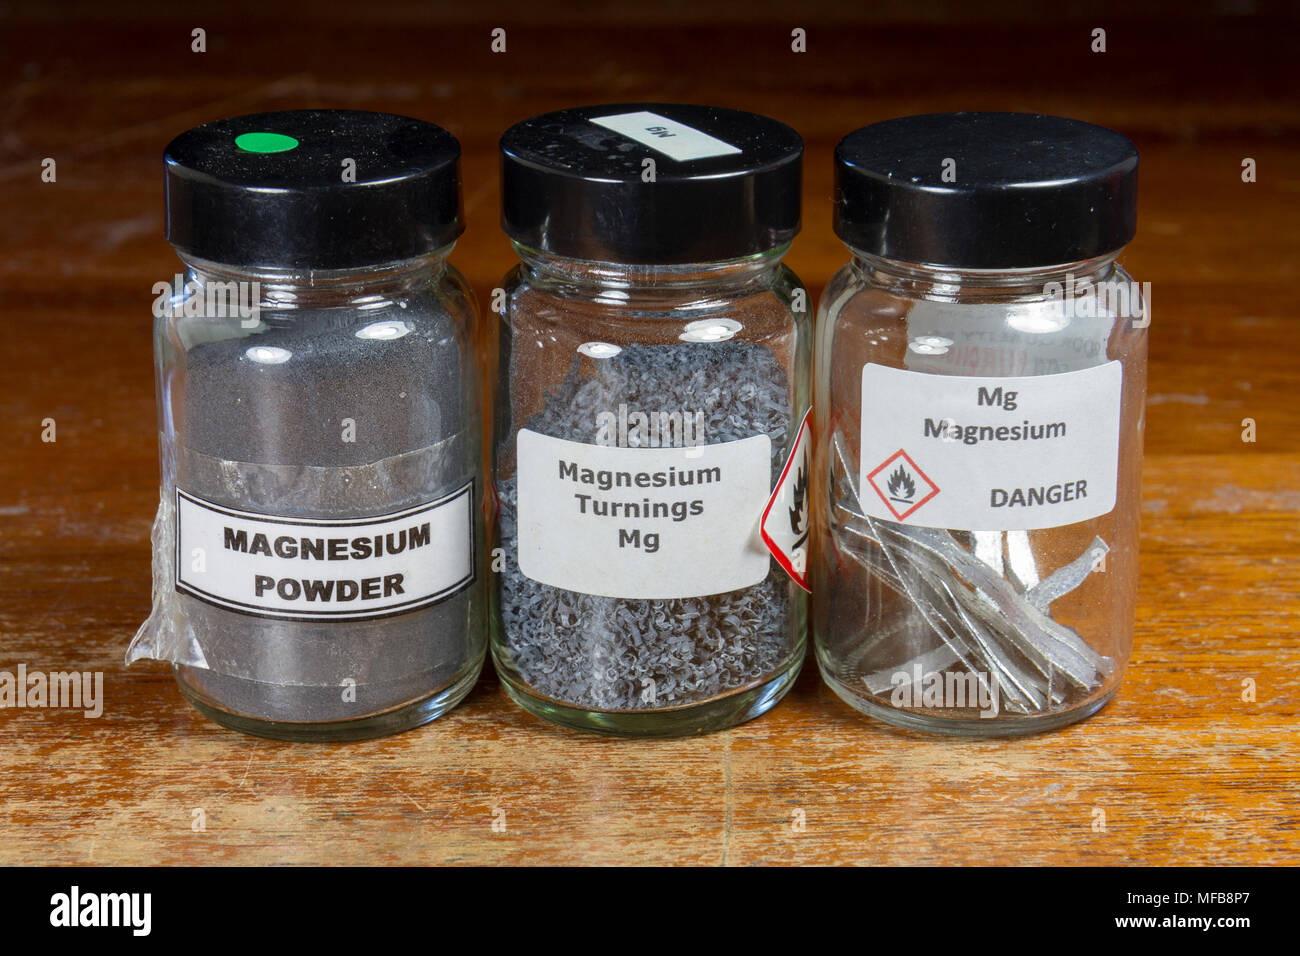 Jars containing Magnesium metal in three different forms (powder, turnings and strips)as used in a UK secondary/high school. - Stock Image